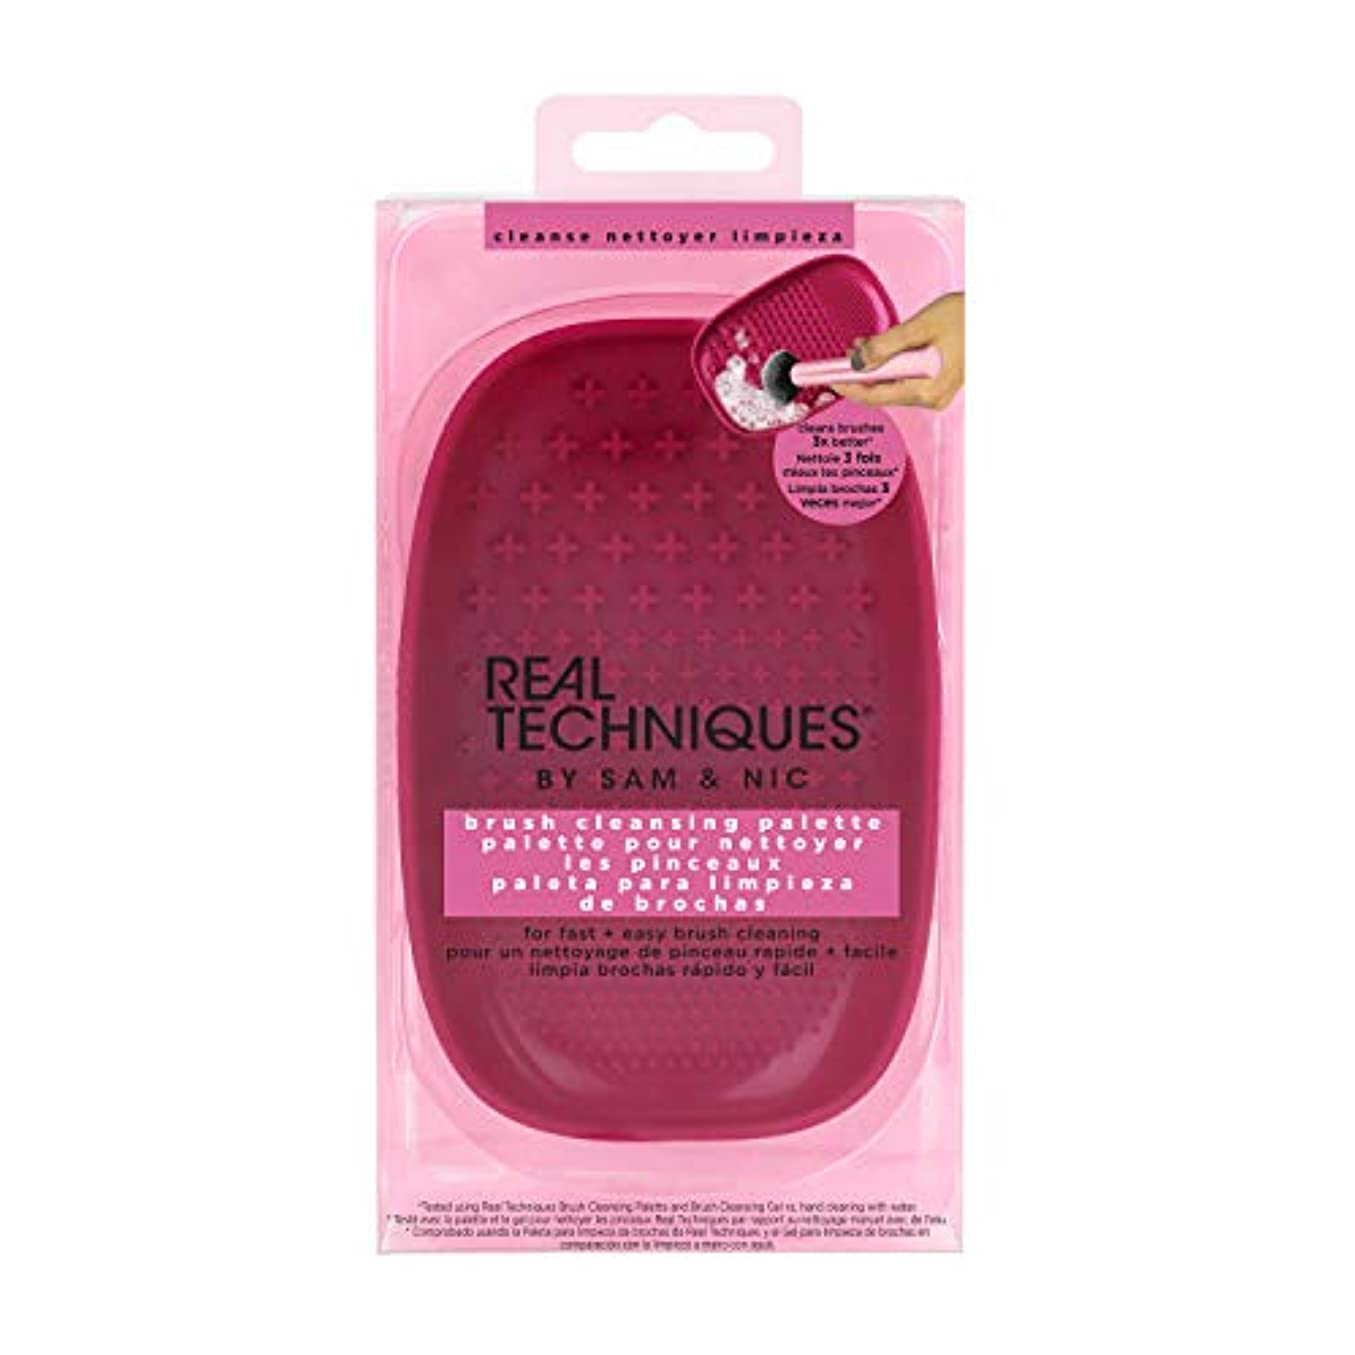 Real Techniques brush cleansing palette (並行輸入品)